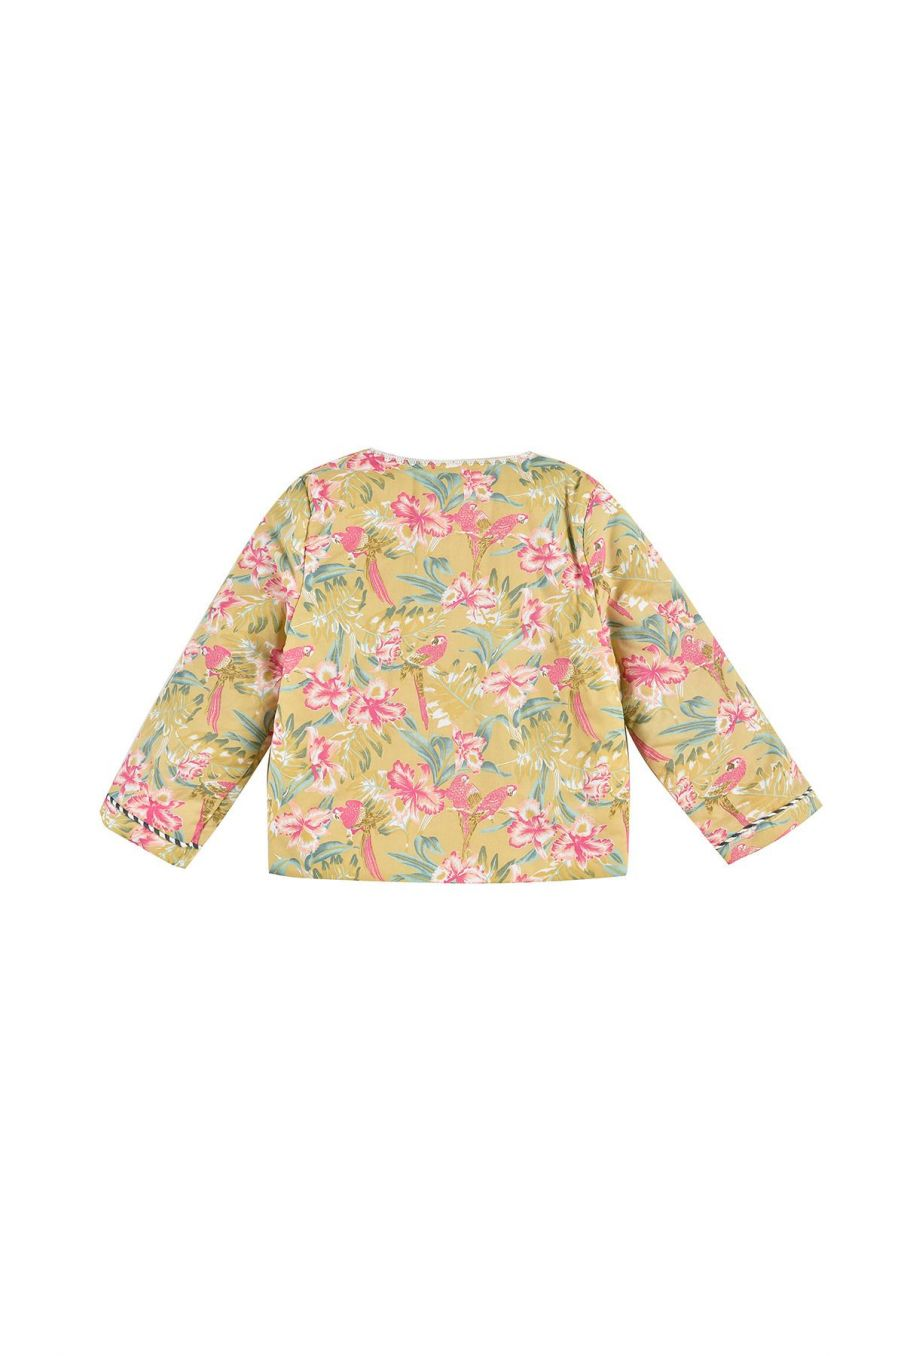 boheme chic vintage veste fille soluta soft honey parrots